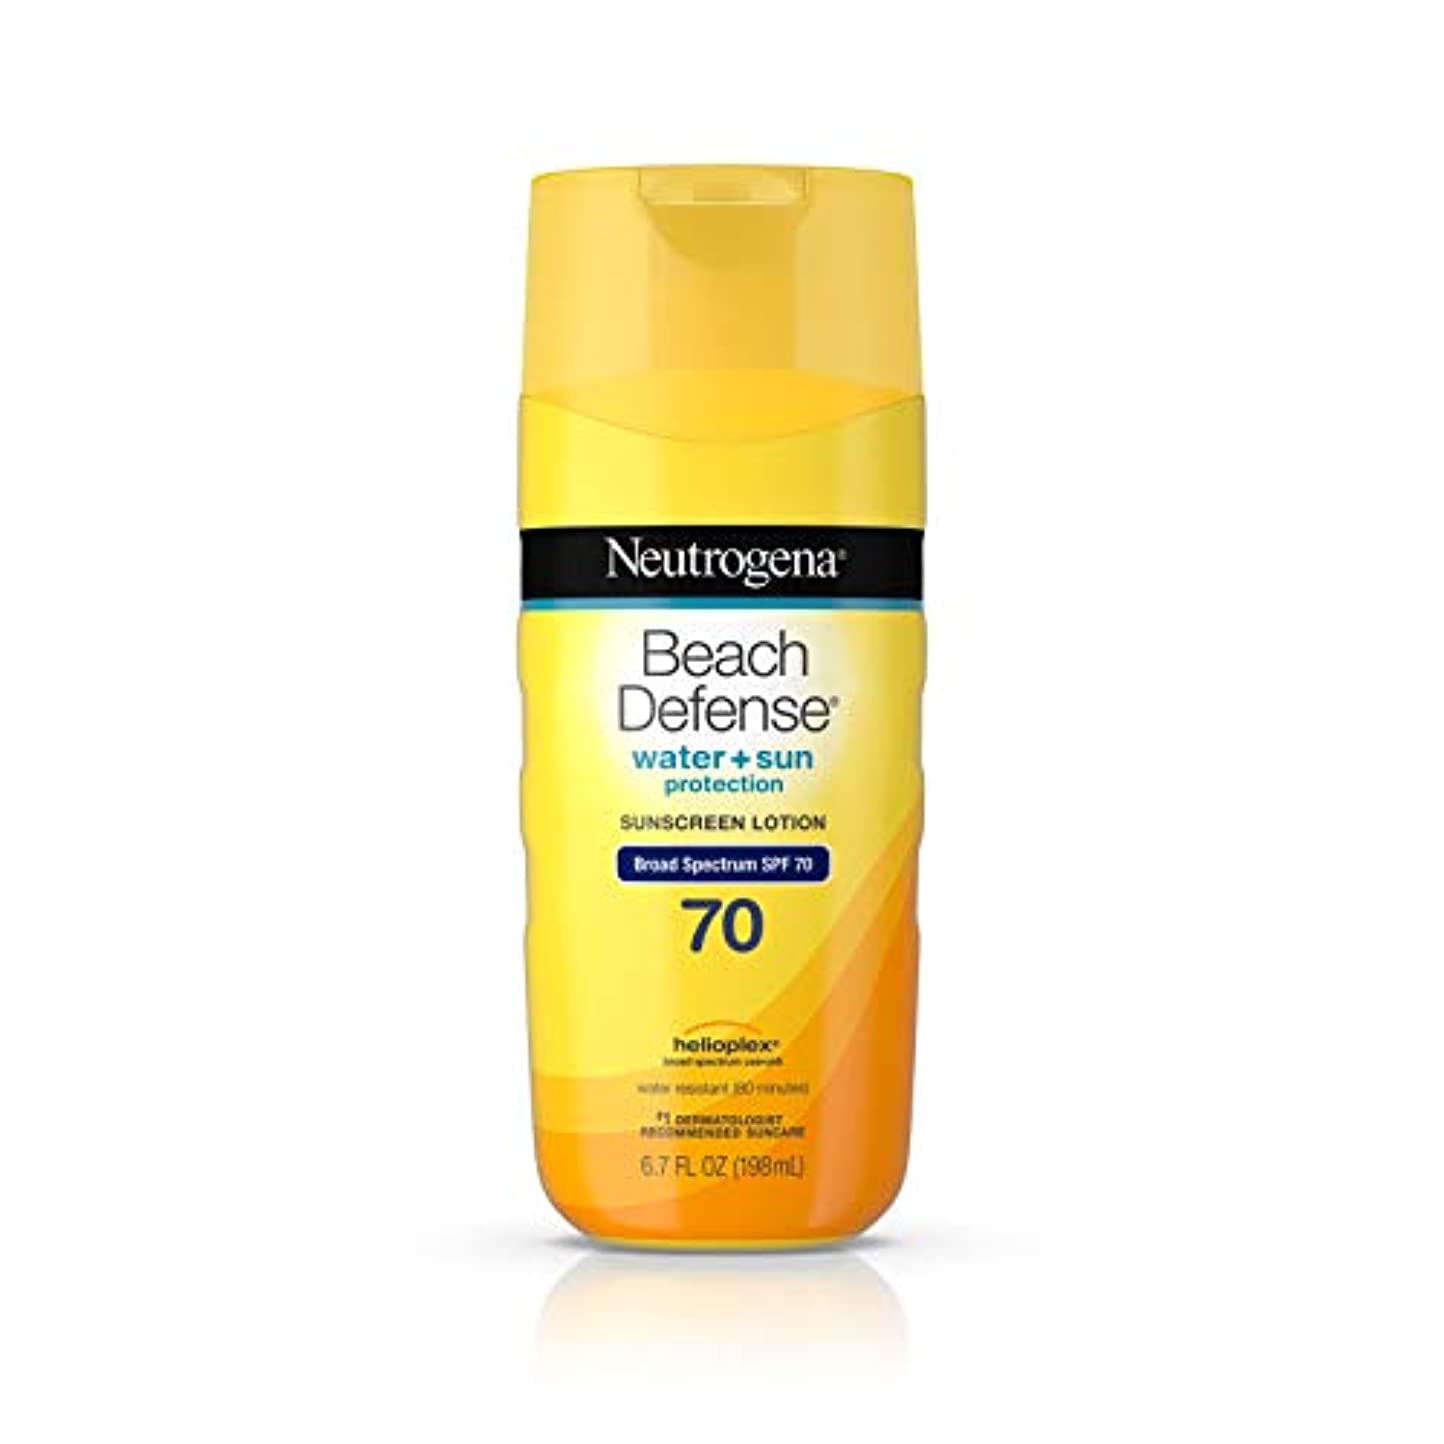 理由競争力のある高音海外直送品Neutrogena Neutrogena Beach Defense Lotion SPF 70, 6.7 oz